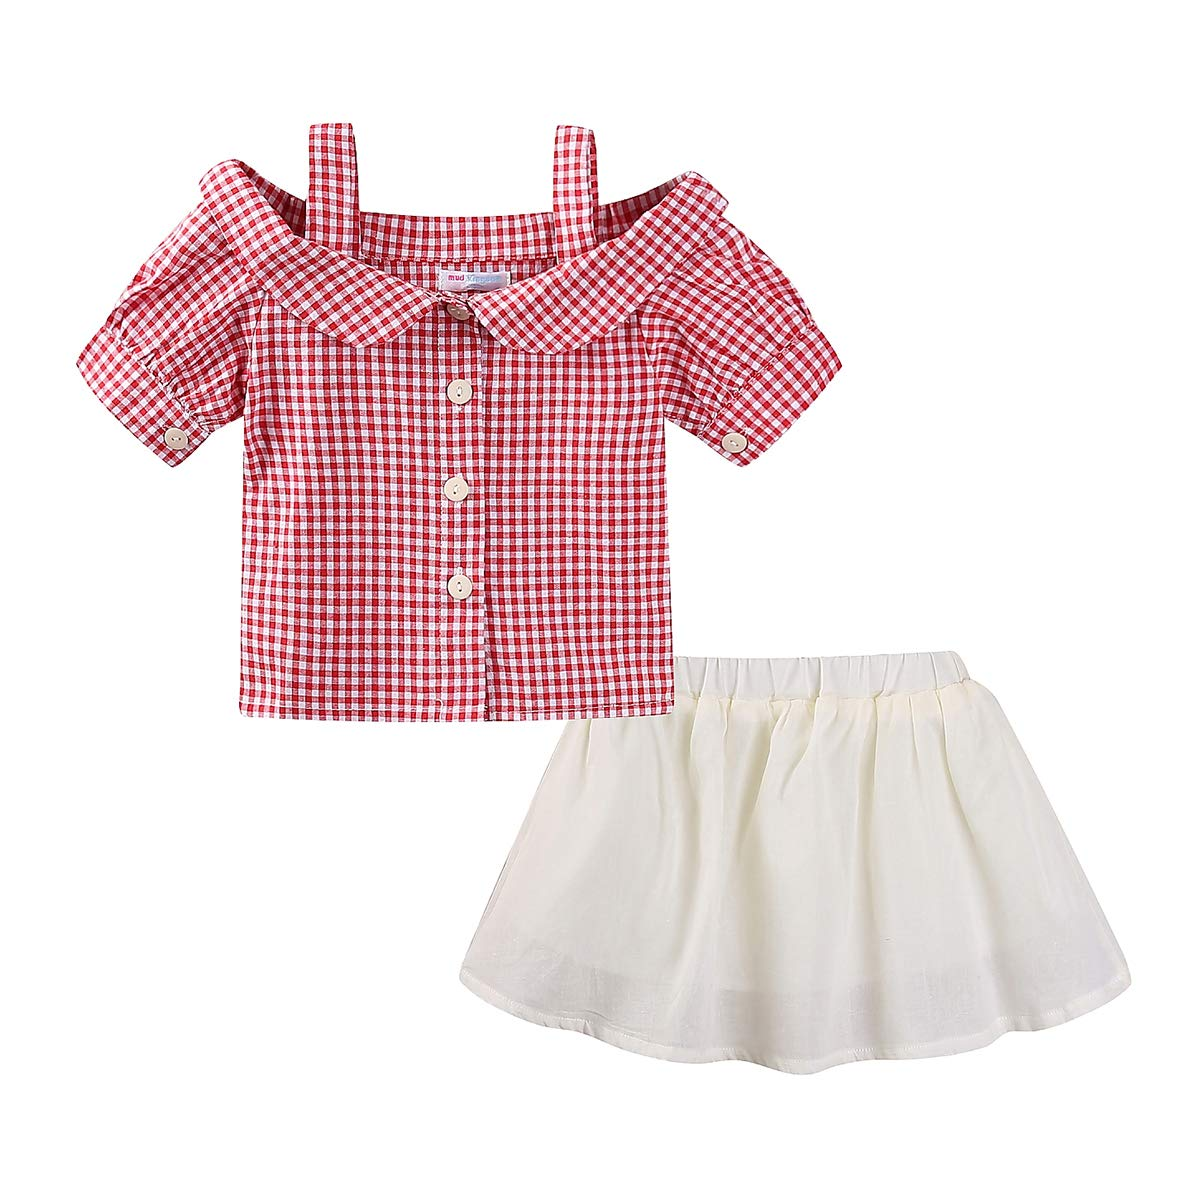 Mud Kingdom Girls Boutique Outfits Size 6 Red Plaid